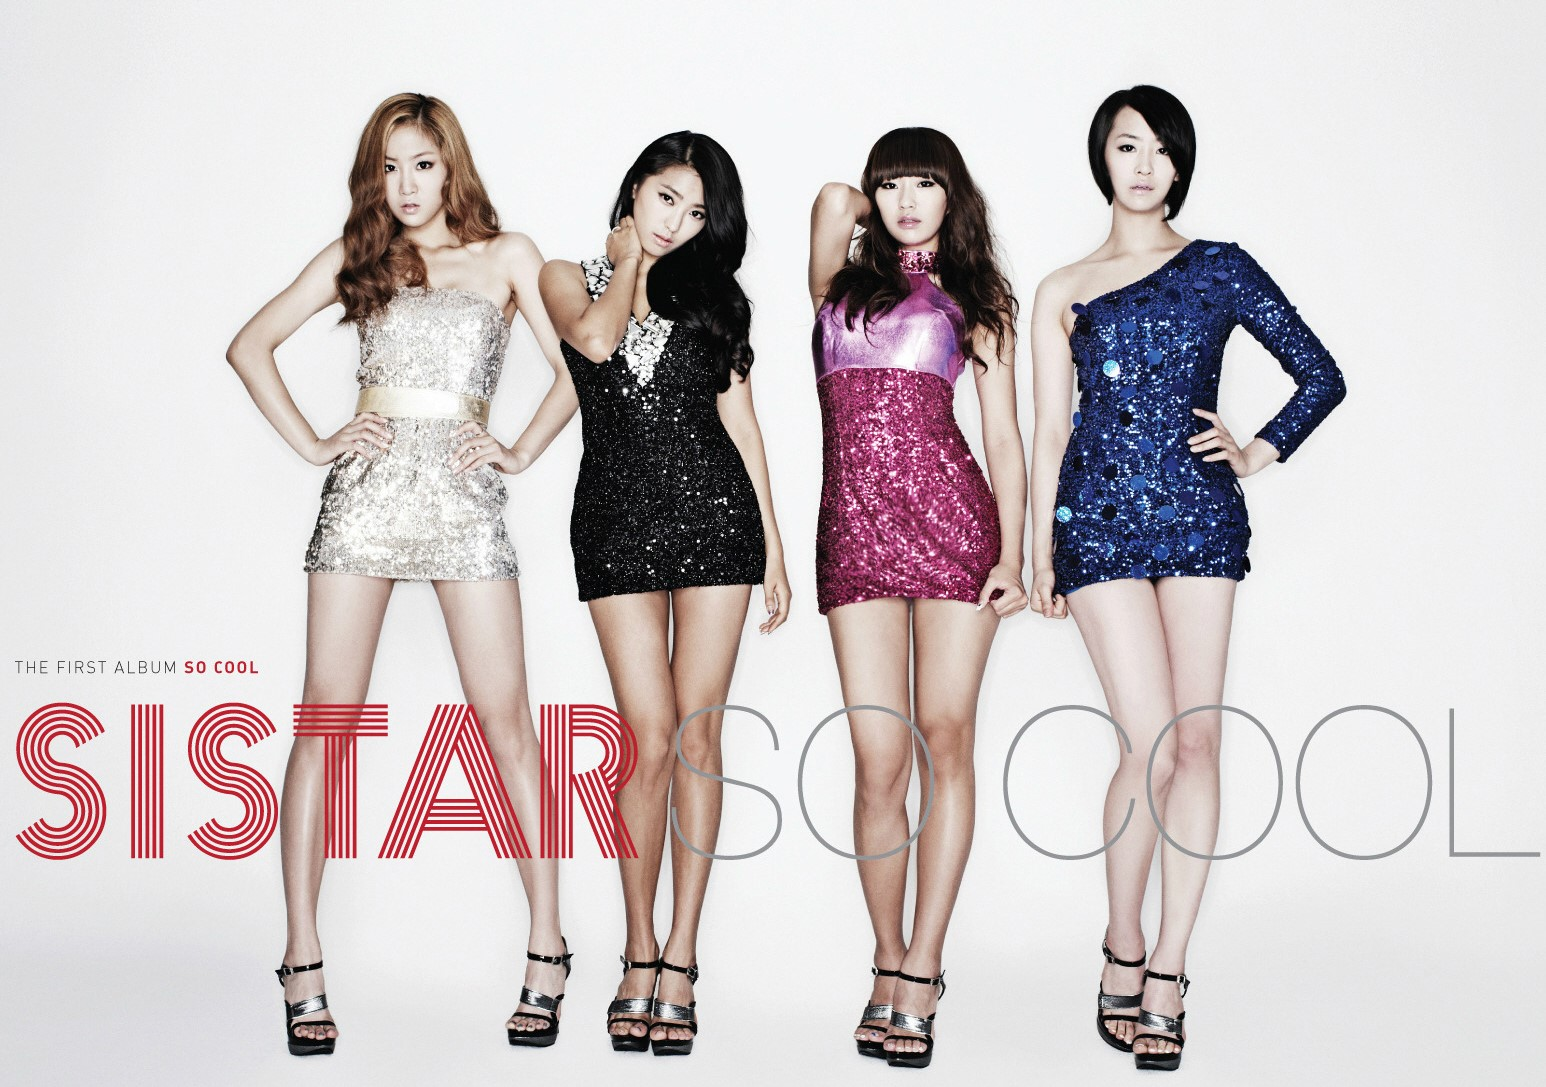 SISTAR - So Cool Album Cover by Cre4t1v31 on DeviantArt